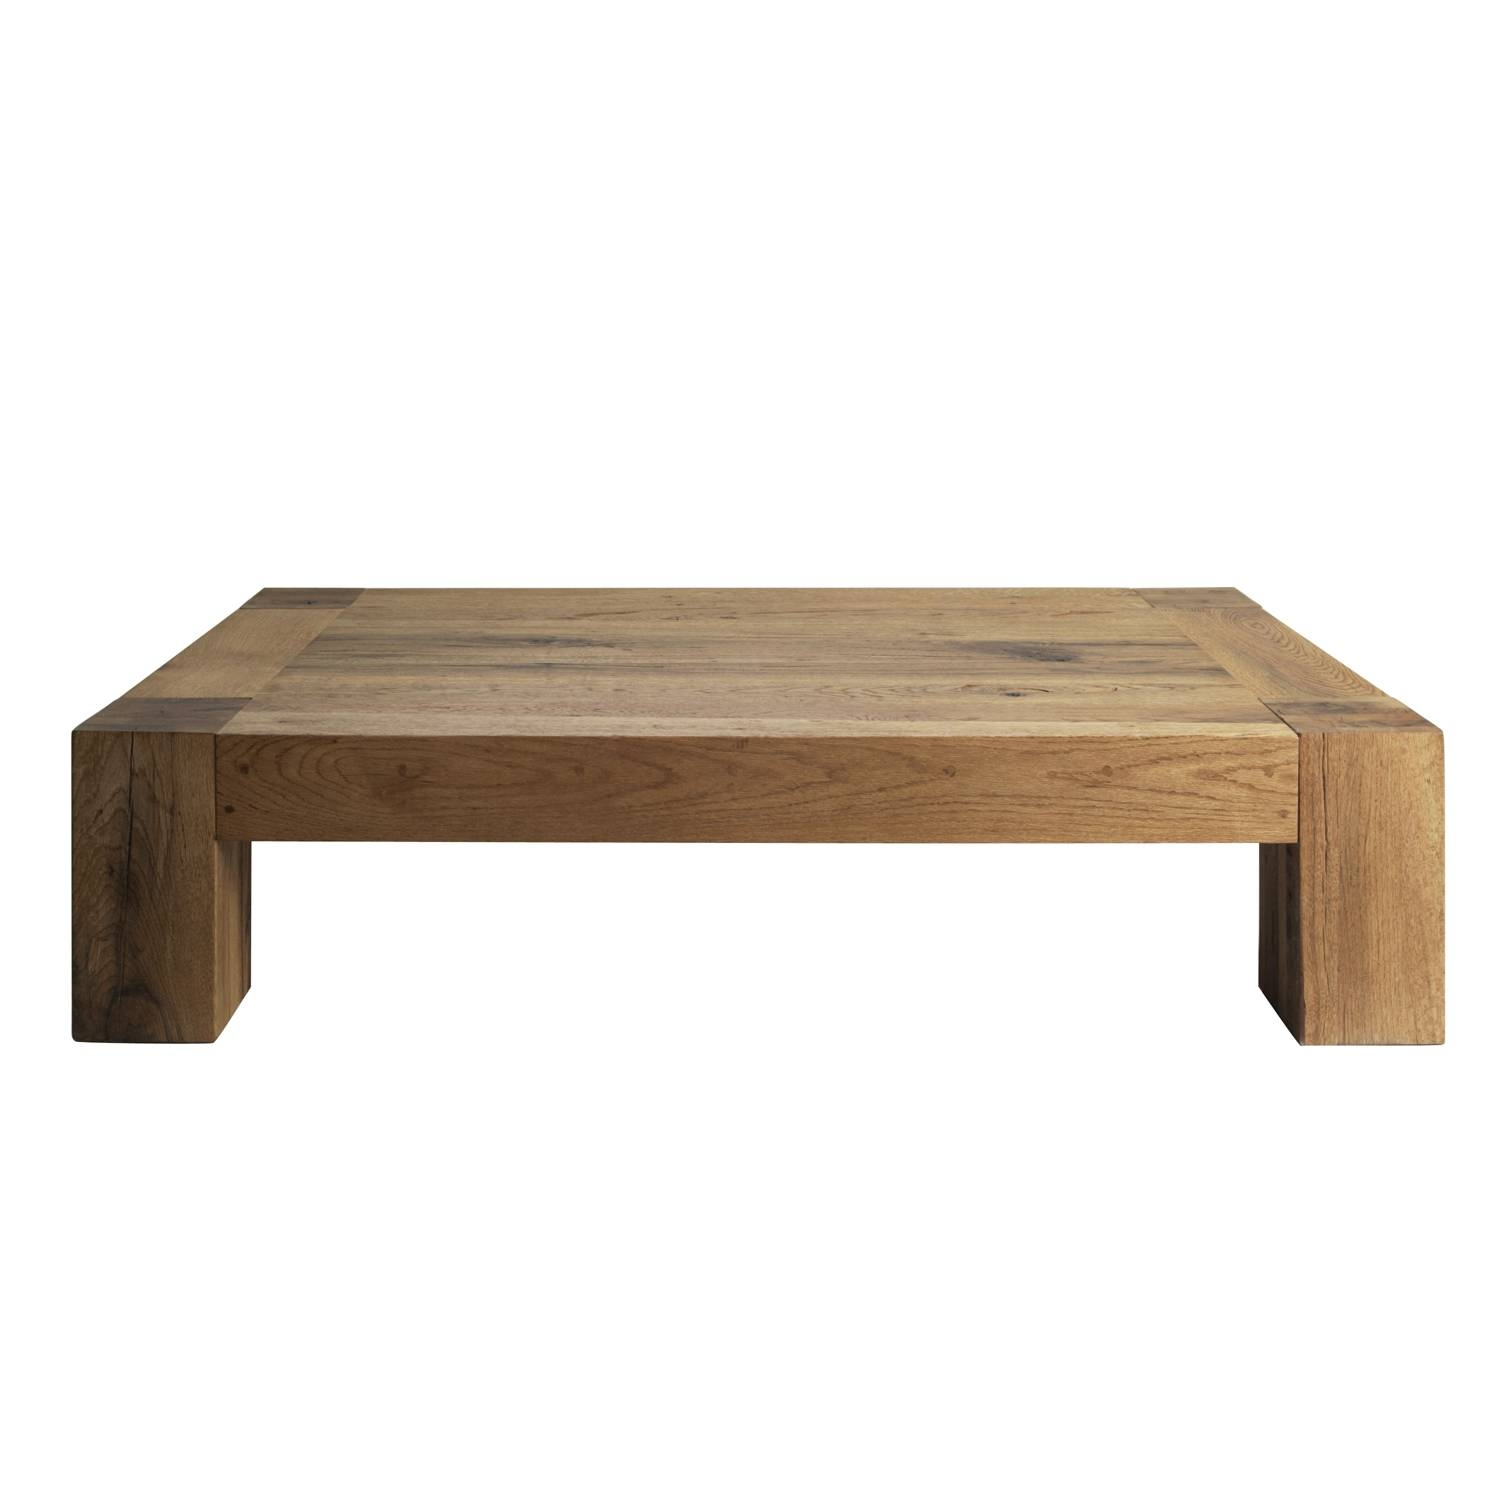 Extraordinary Low Coffee Table Wood For Your Modern Home Interior intended for Low Wood Coffee Tables (Image 5 of 15)